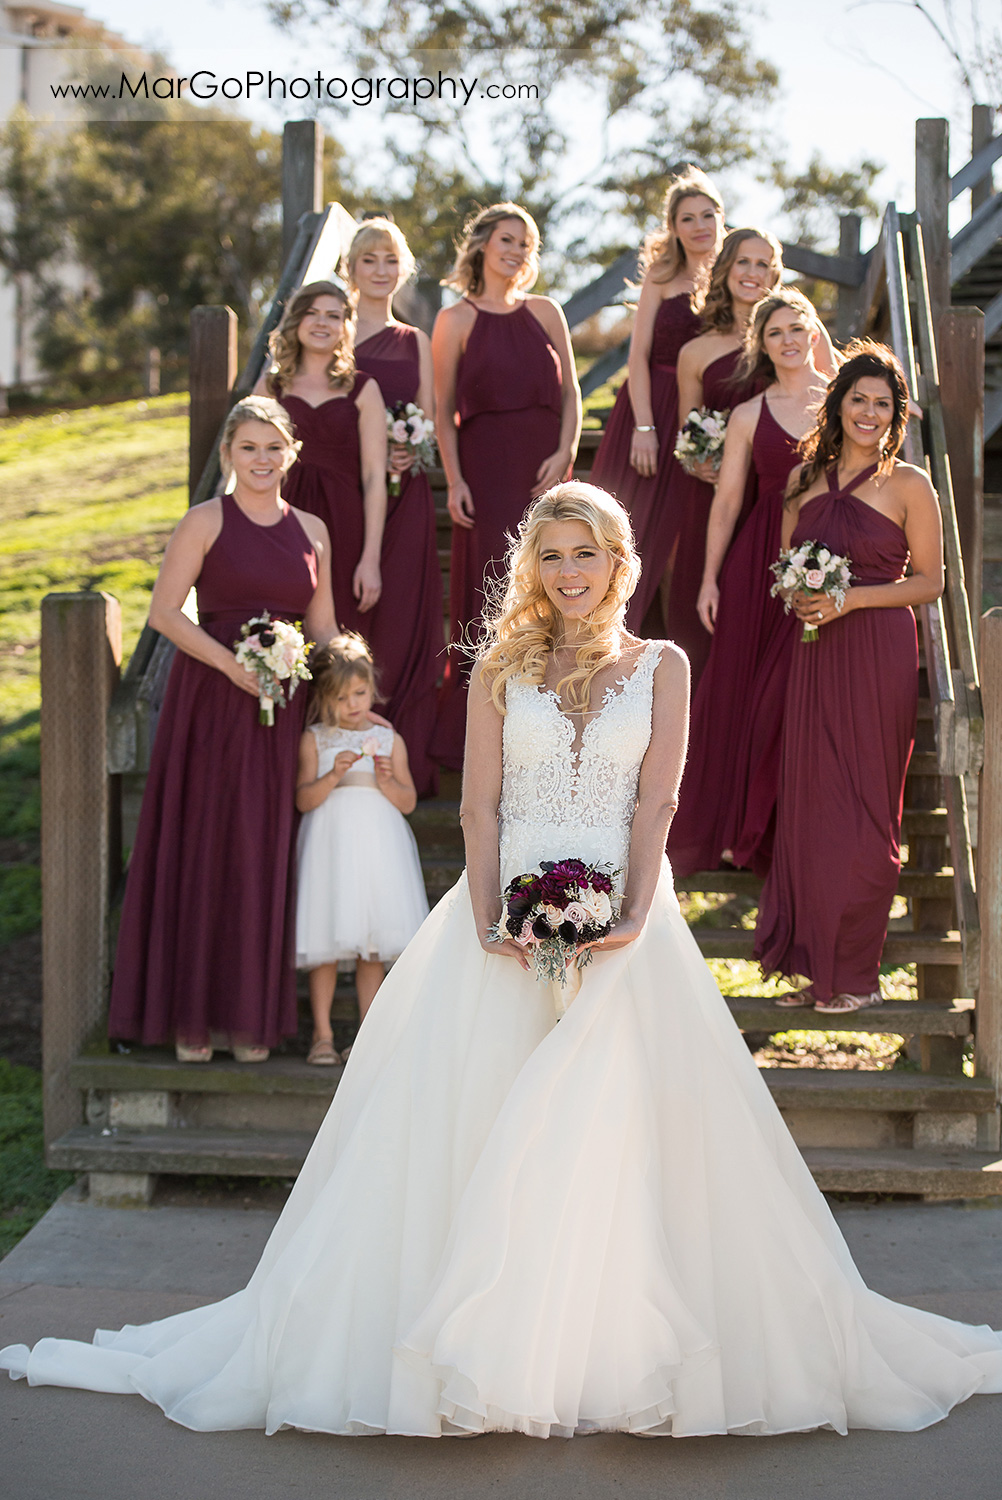 portrait of bride holding bouquet and standing in front of bridesmaids in burgundy dresses at San Diego Mission Bay Park